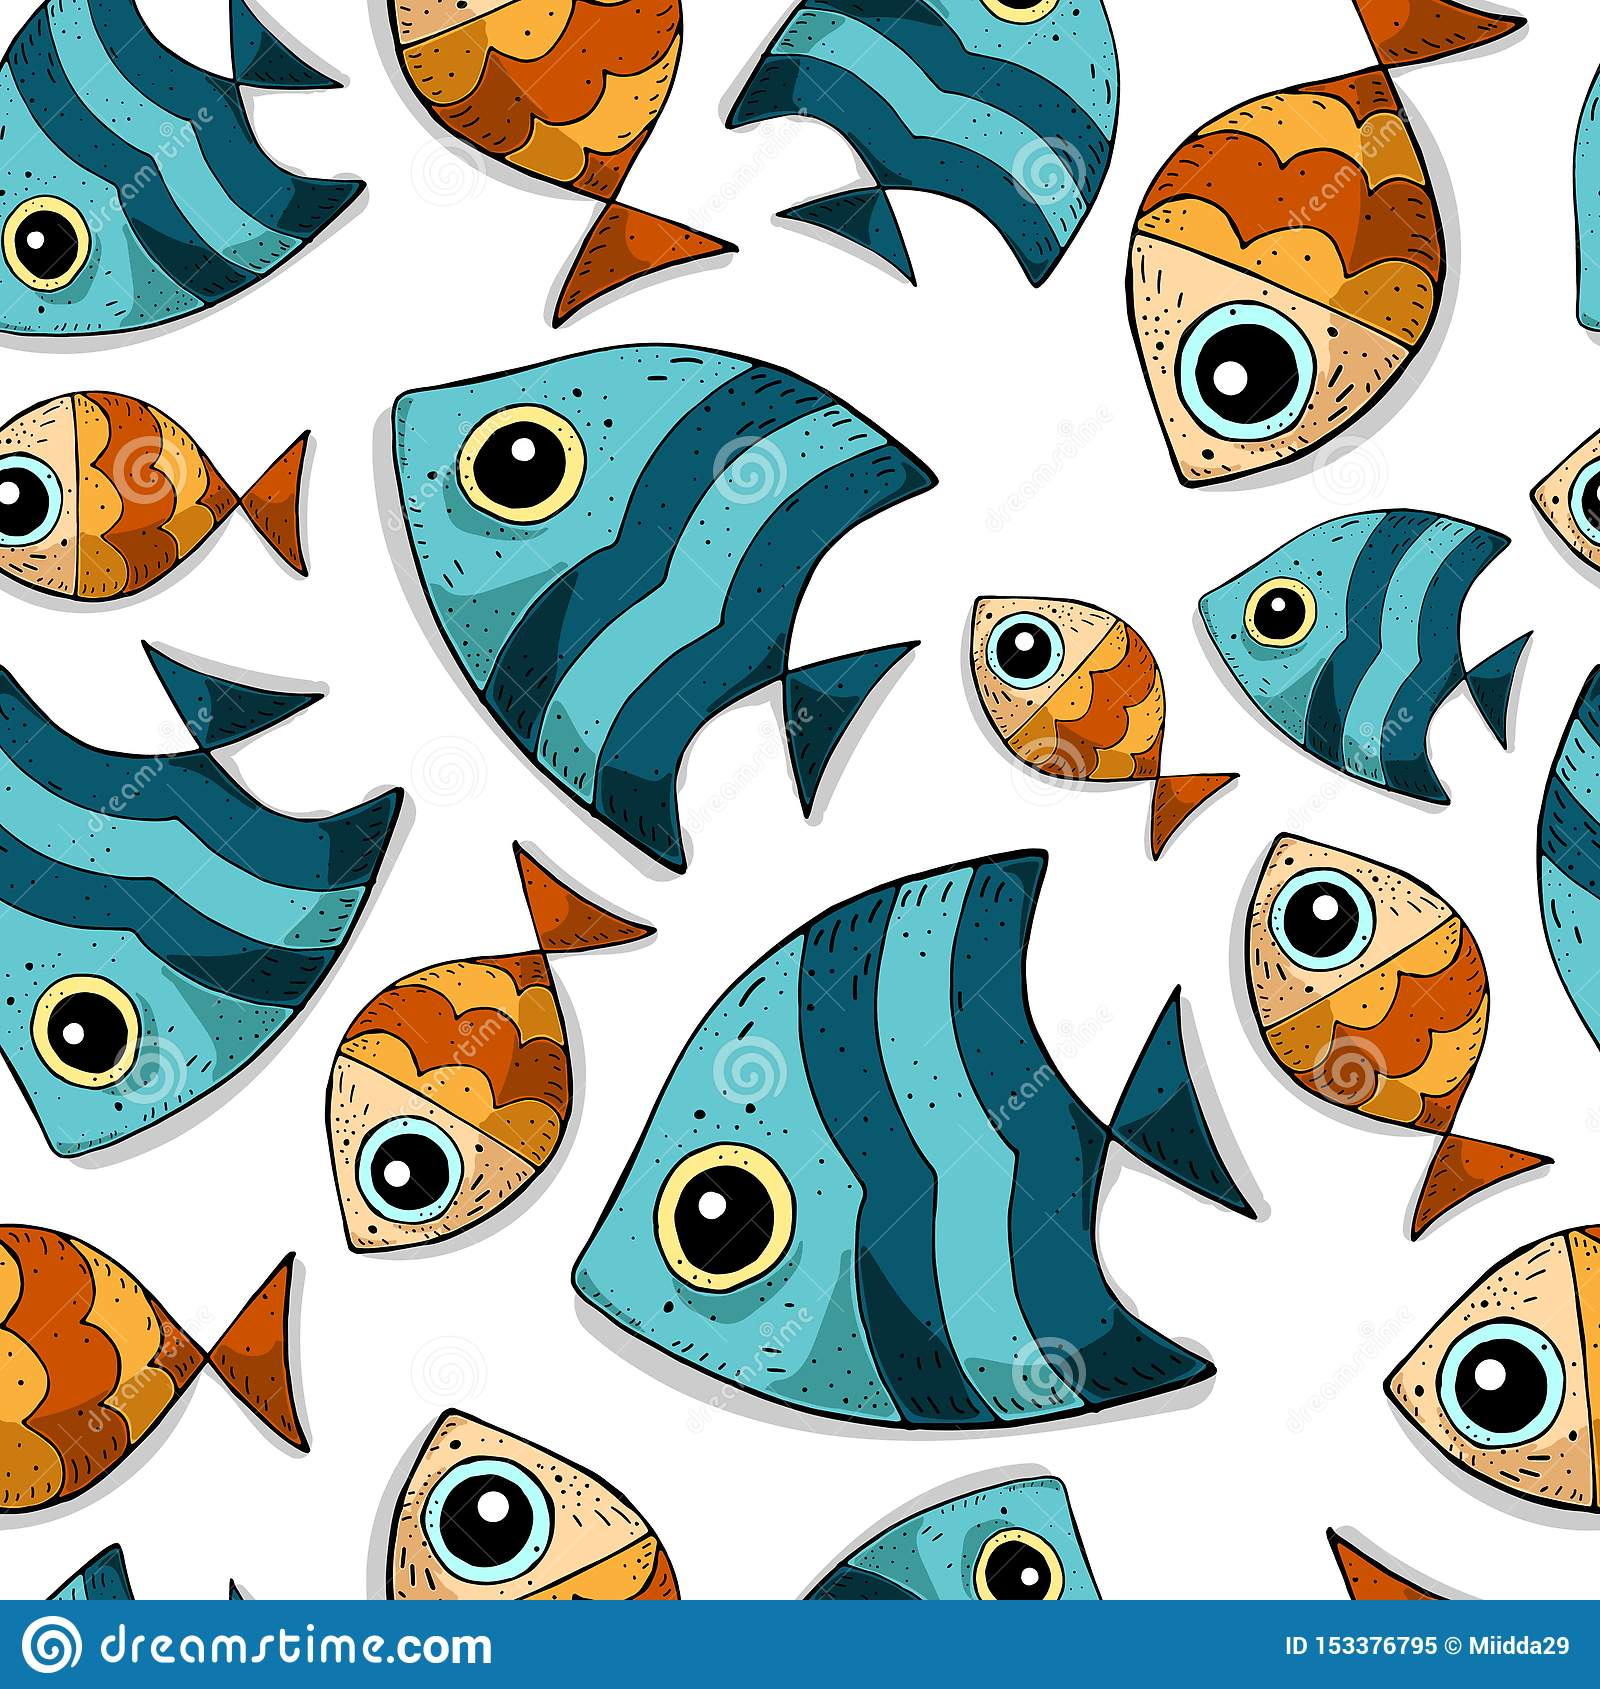 Cute cartoon seamless vector pattern with colored sea fishes.